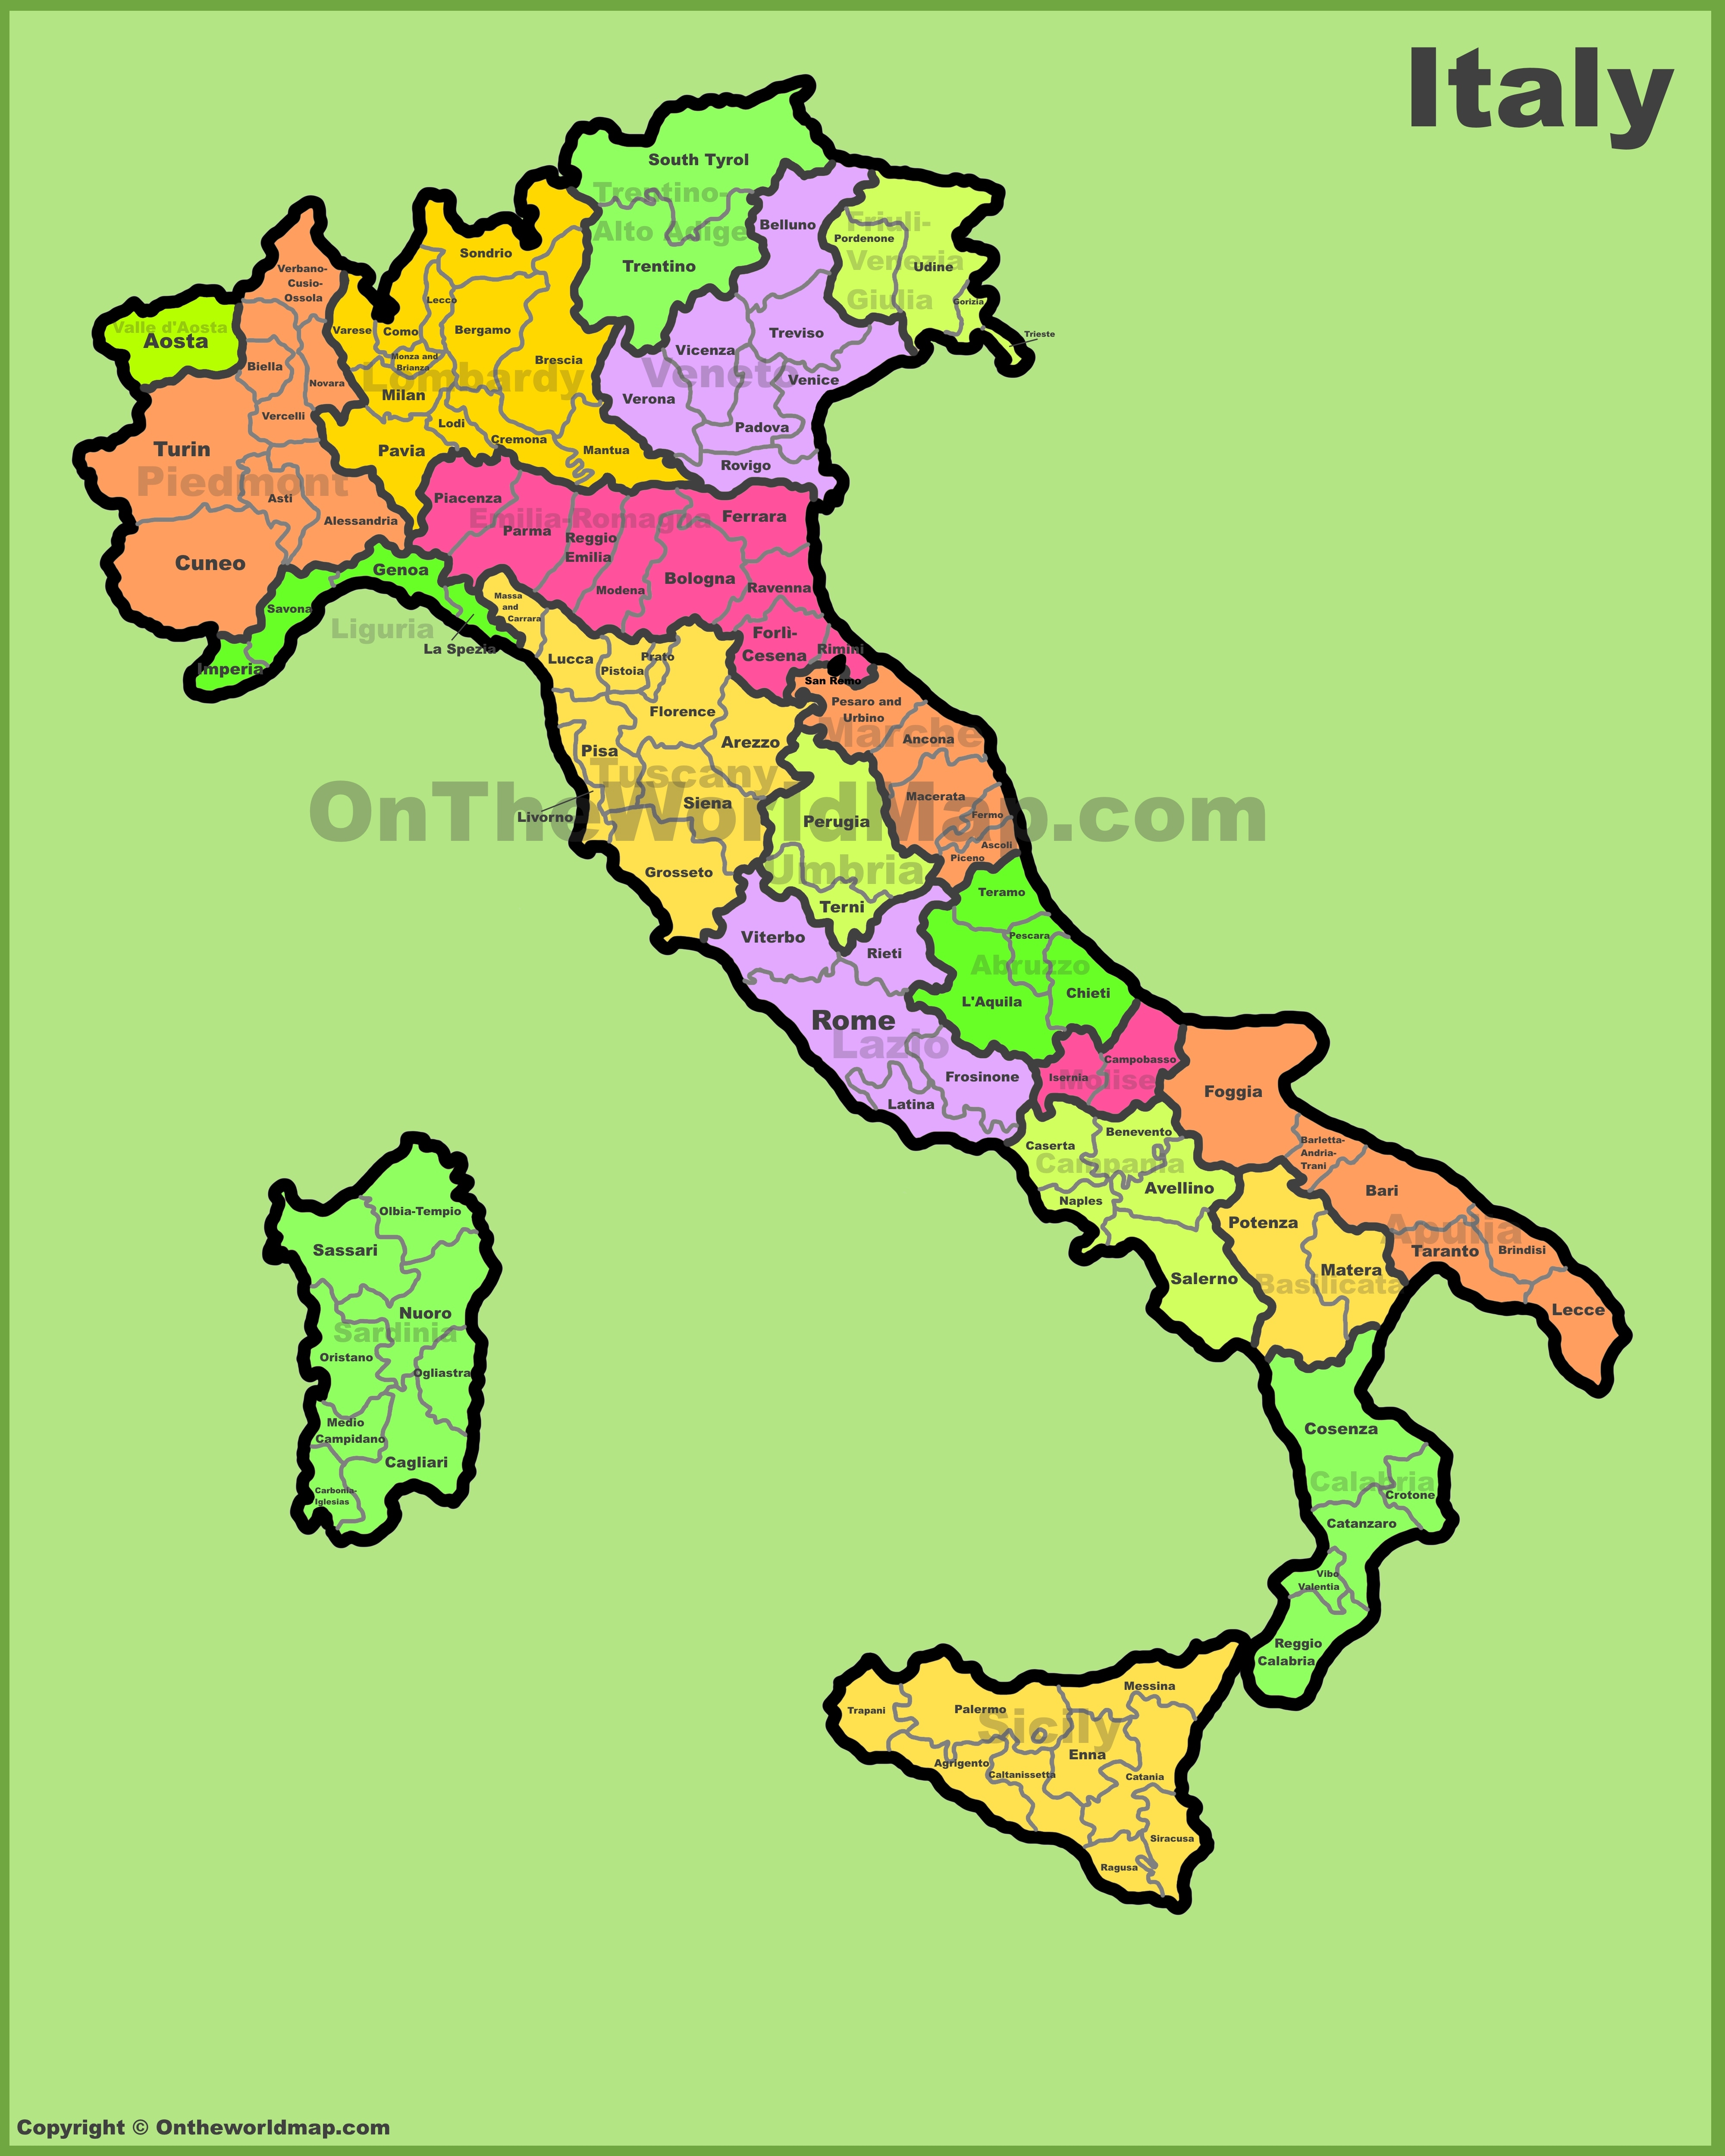 Maps Of Italy Italy provinces map Maps Of Italy